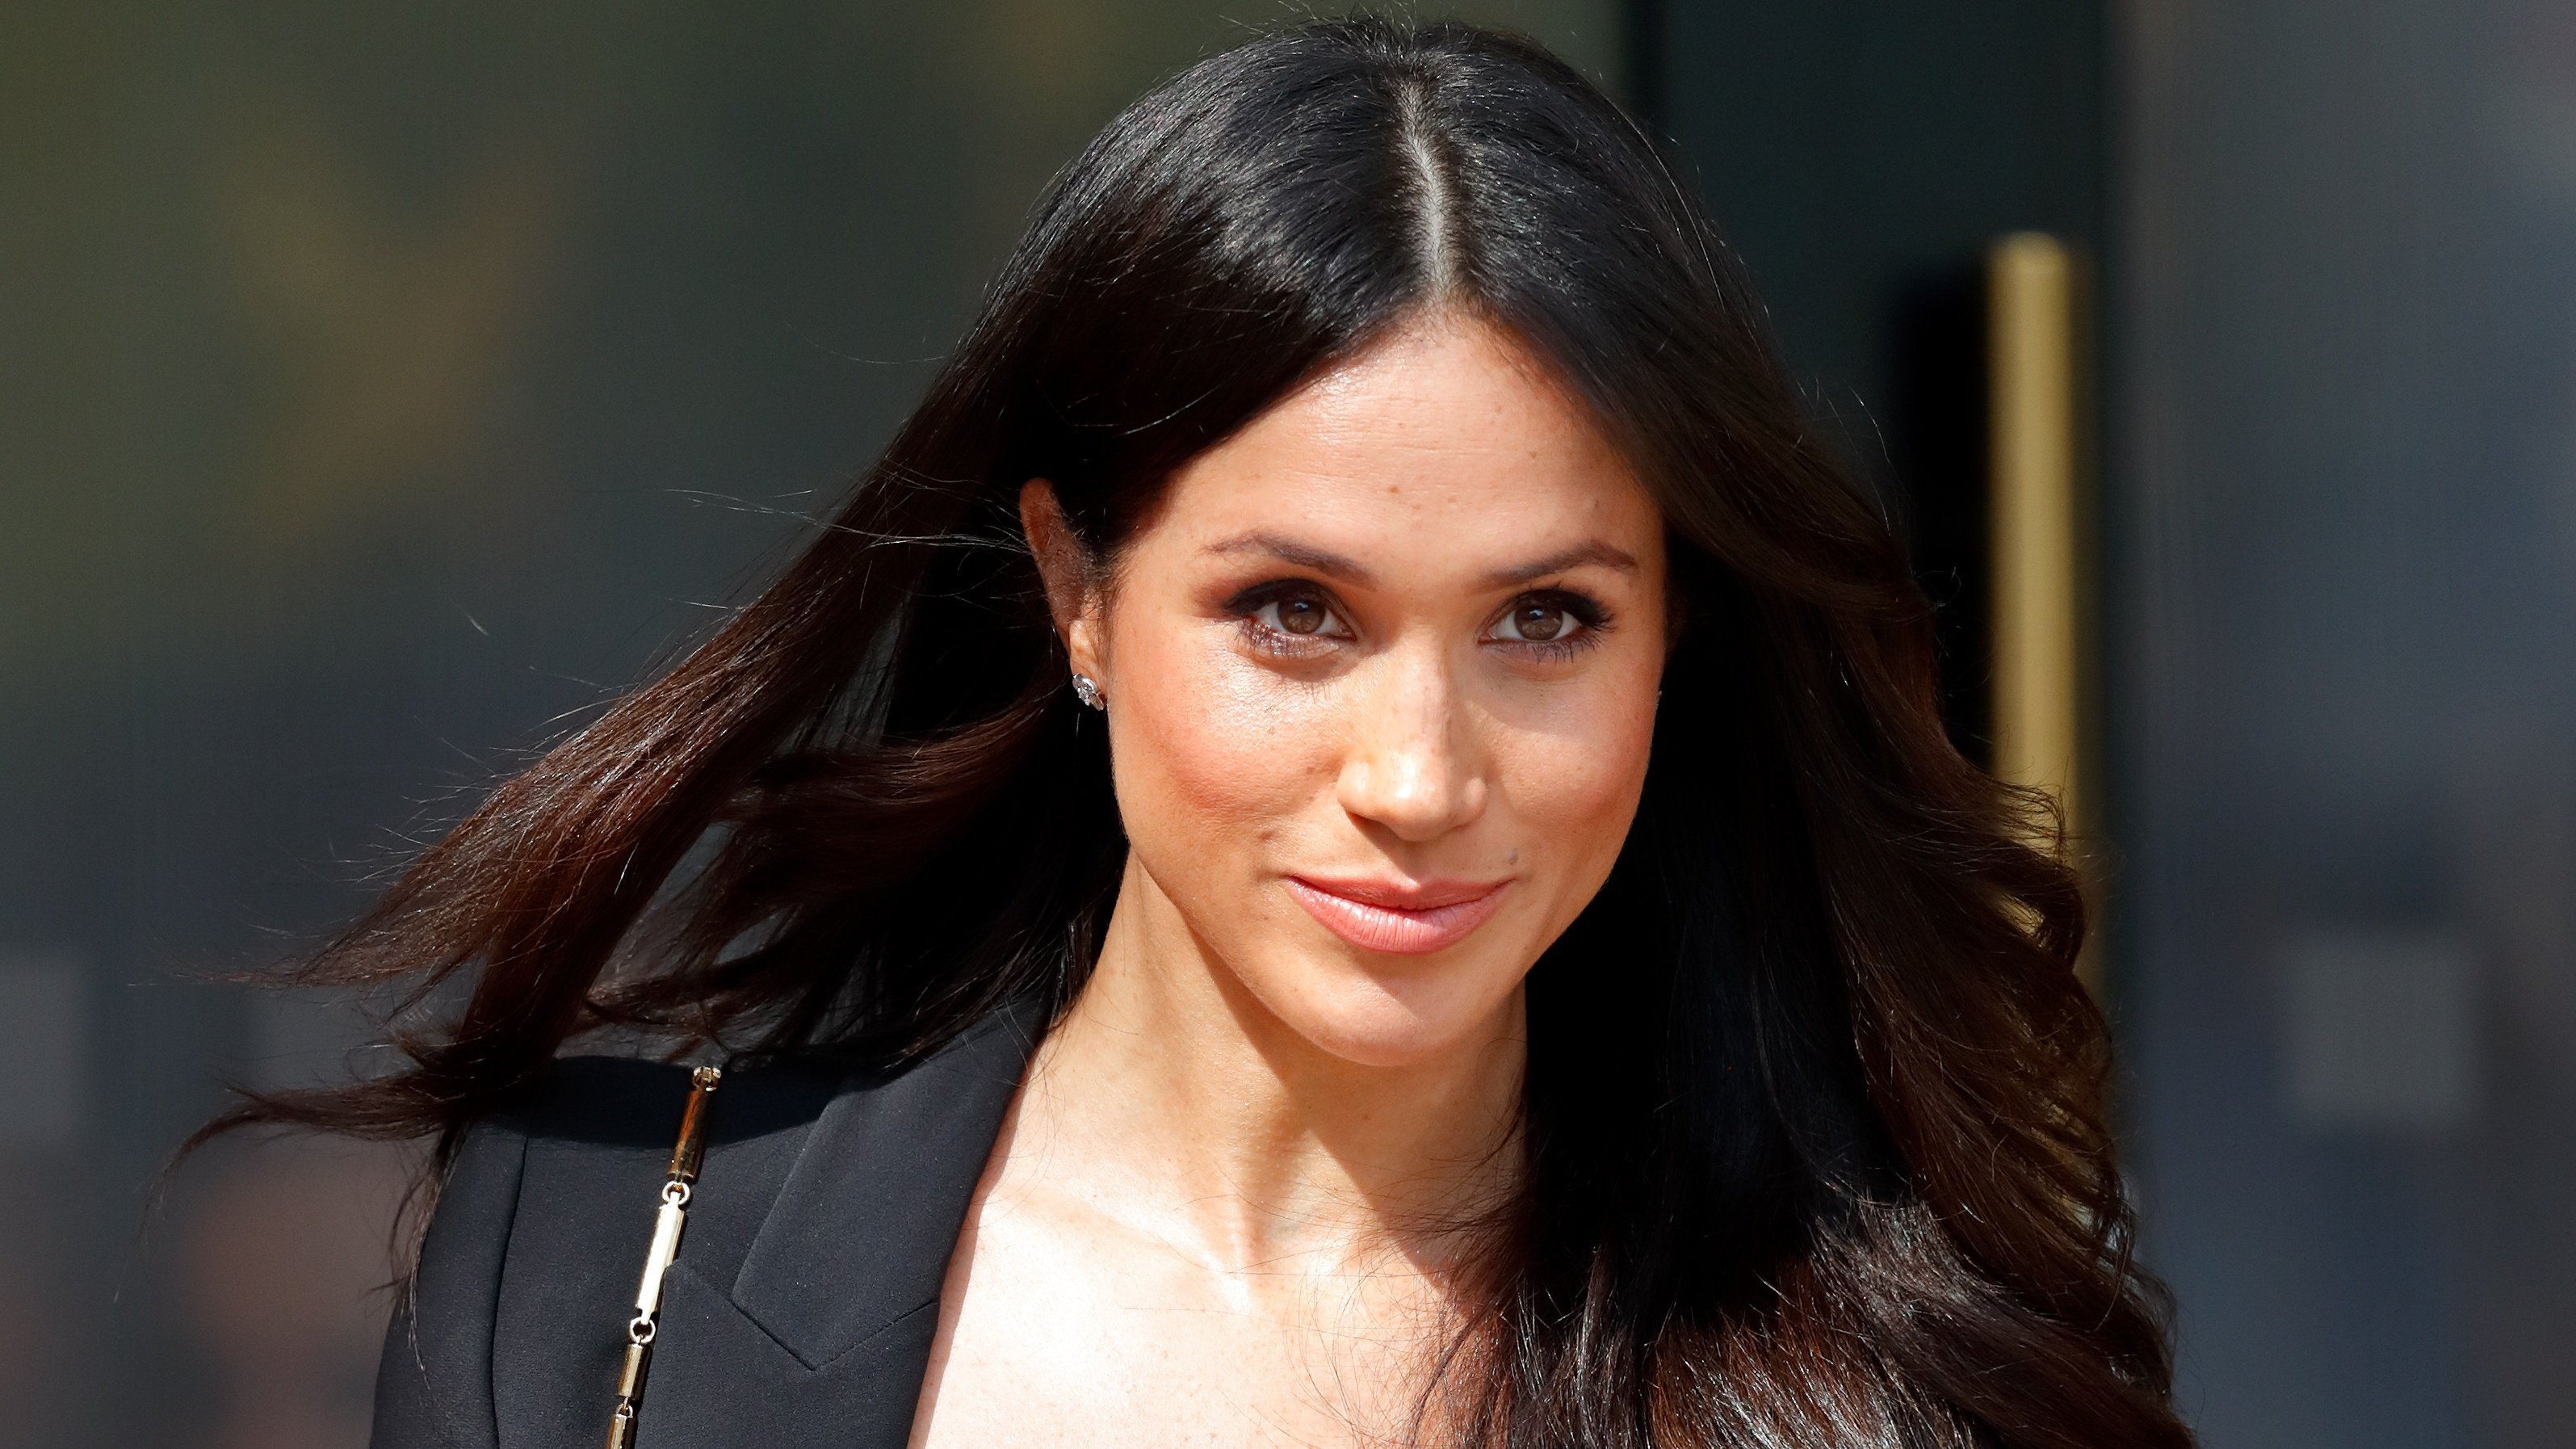 Meghan Markle Attends First Public Event In Canada Following 'Megxit'